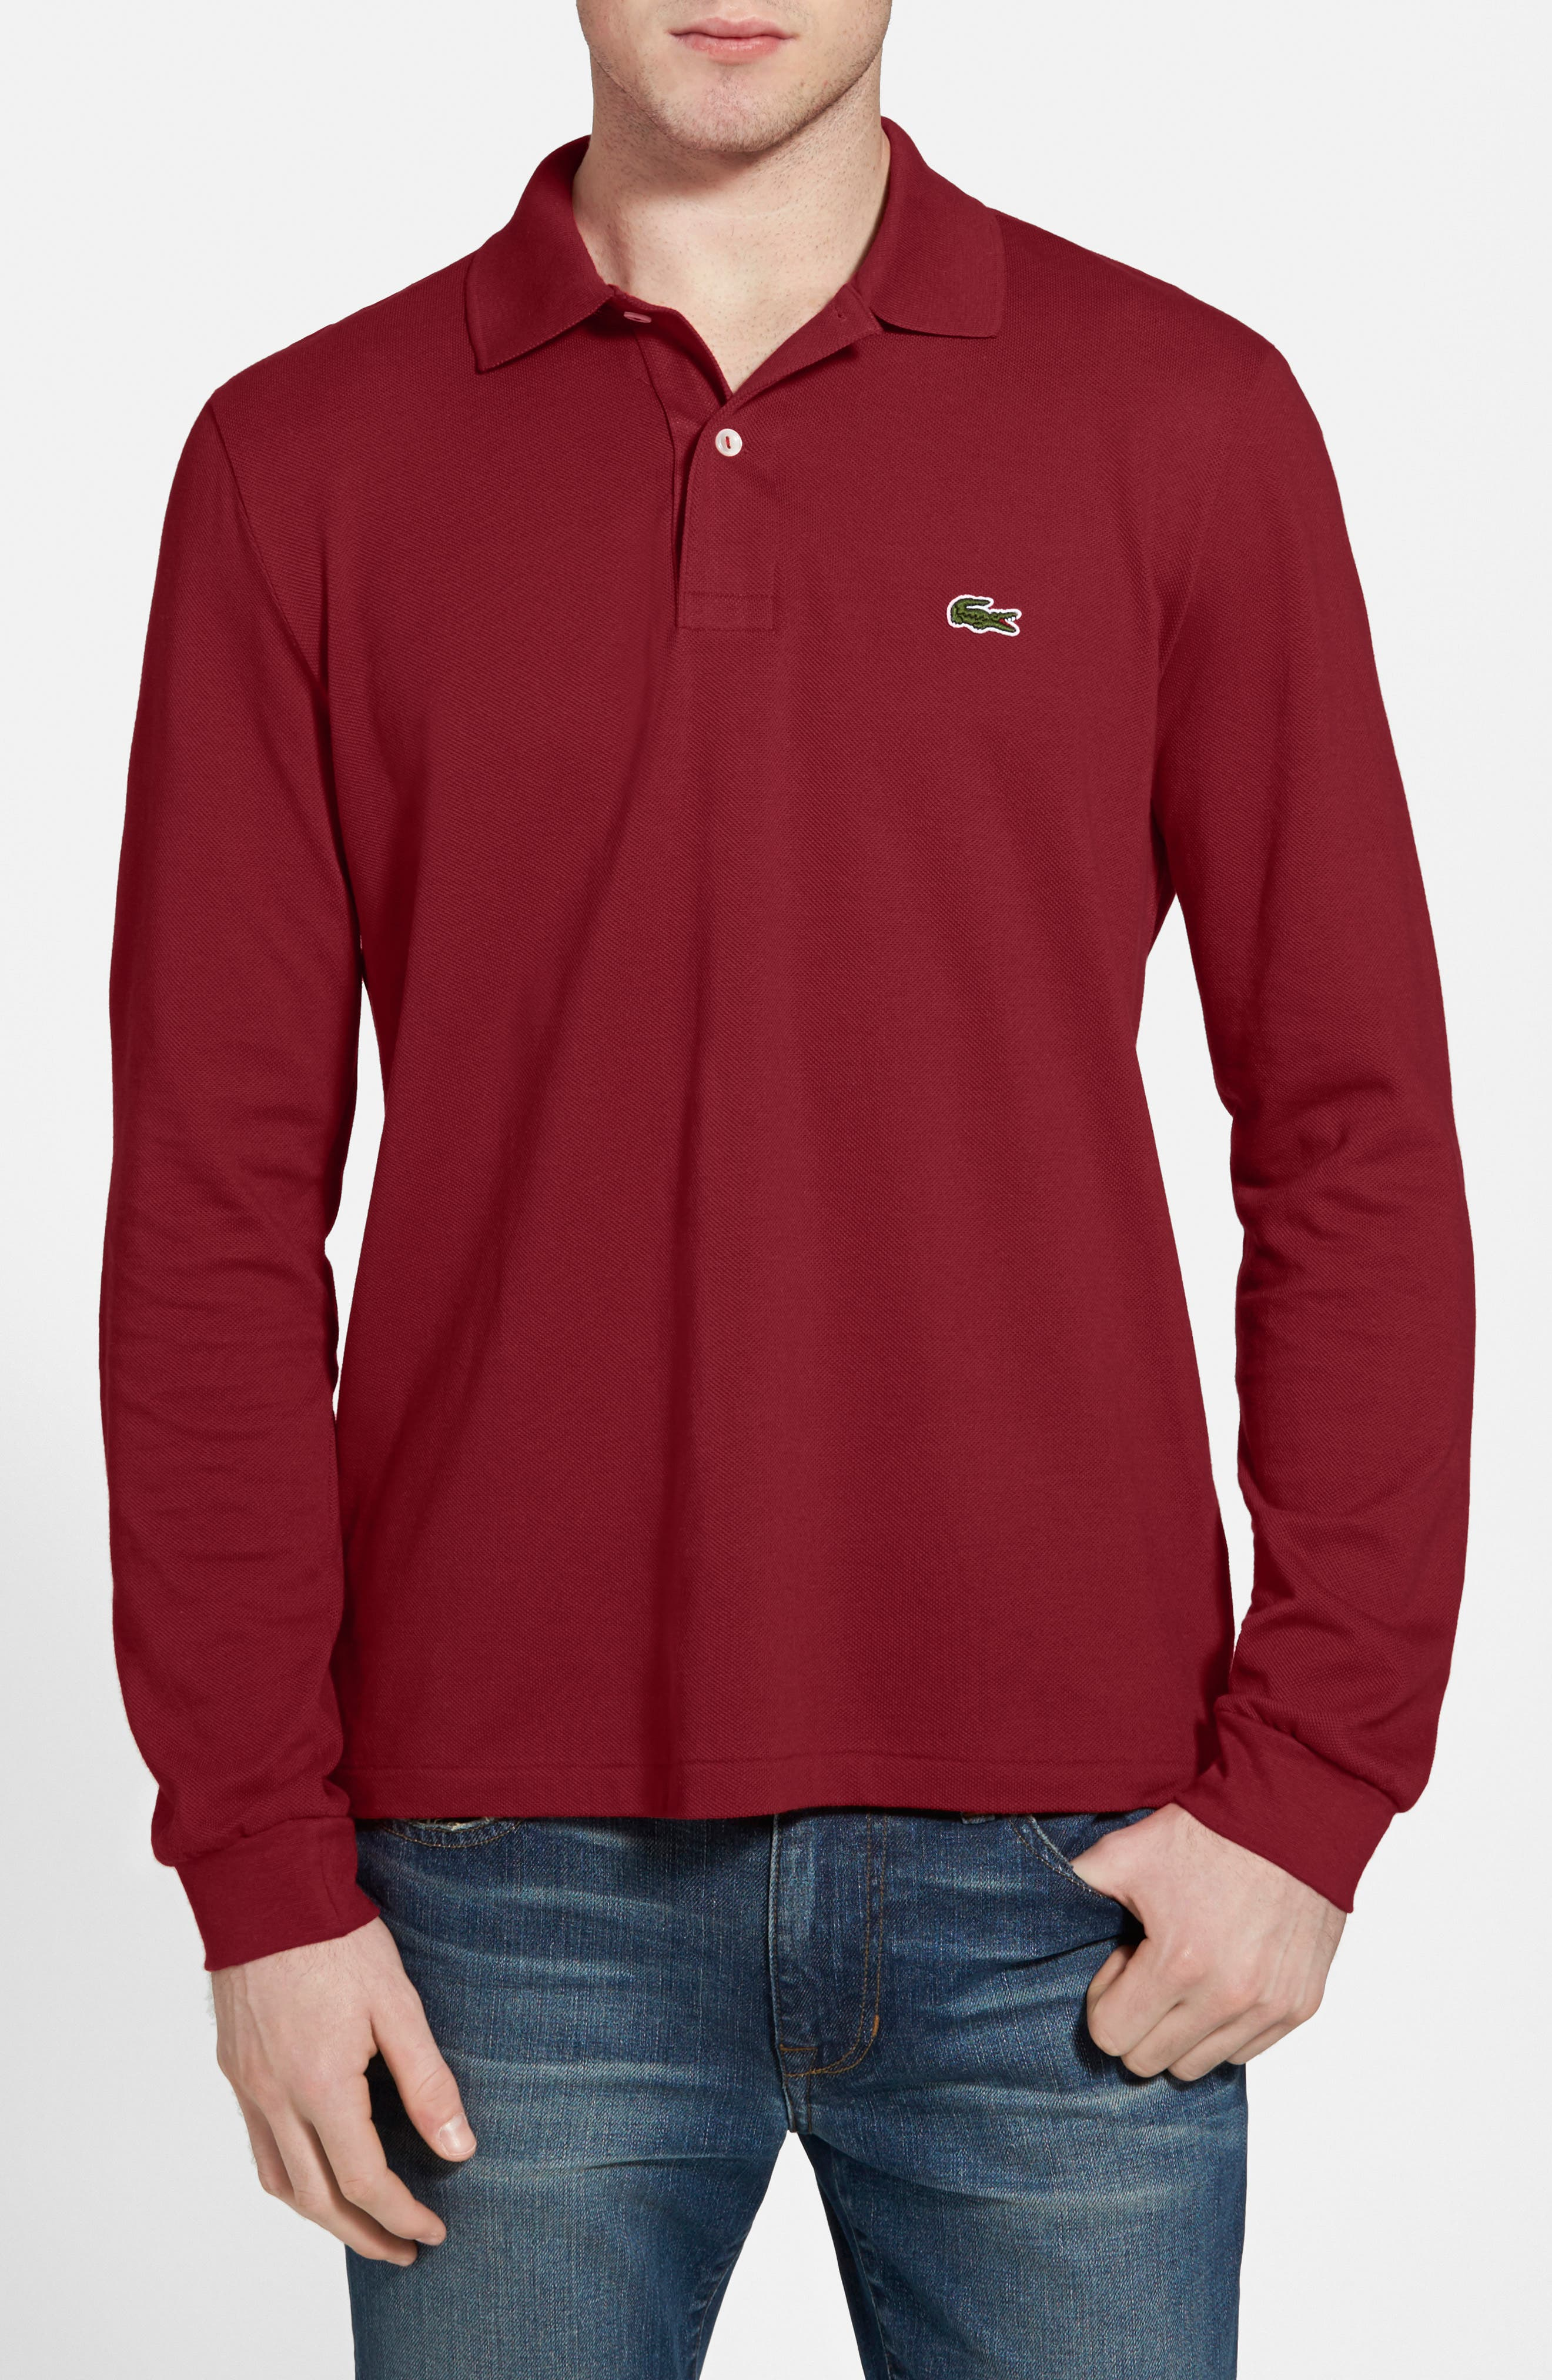 LACOSTE Classic Fit Long Sleeve Piqué Polo